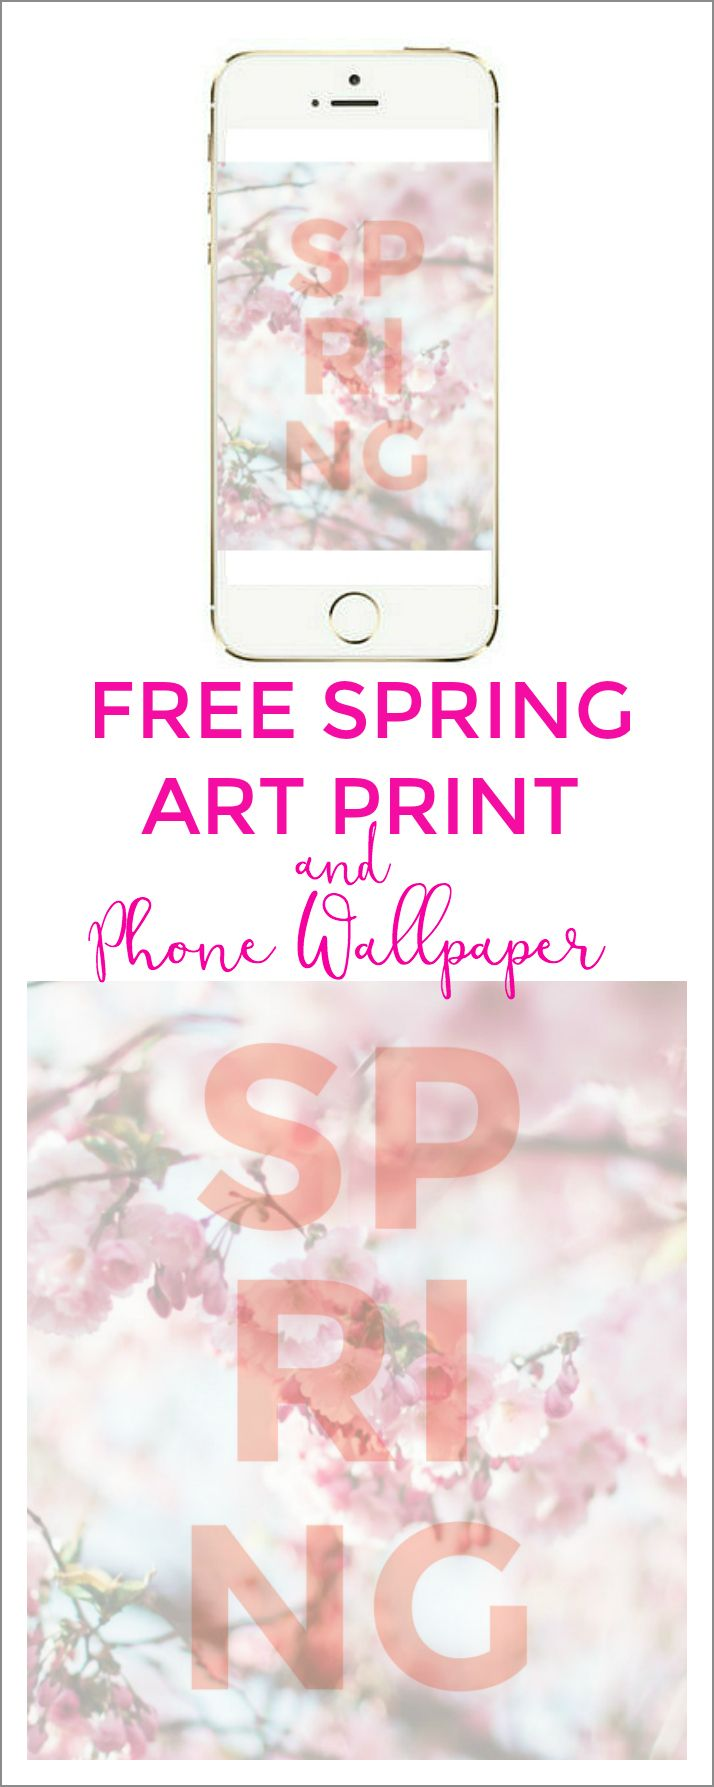 FREE Spring floral art printable and phone wallpaper! You can print it and frame it for your art gallery wall and also use it for your phone and iPad wallpaper!